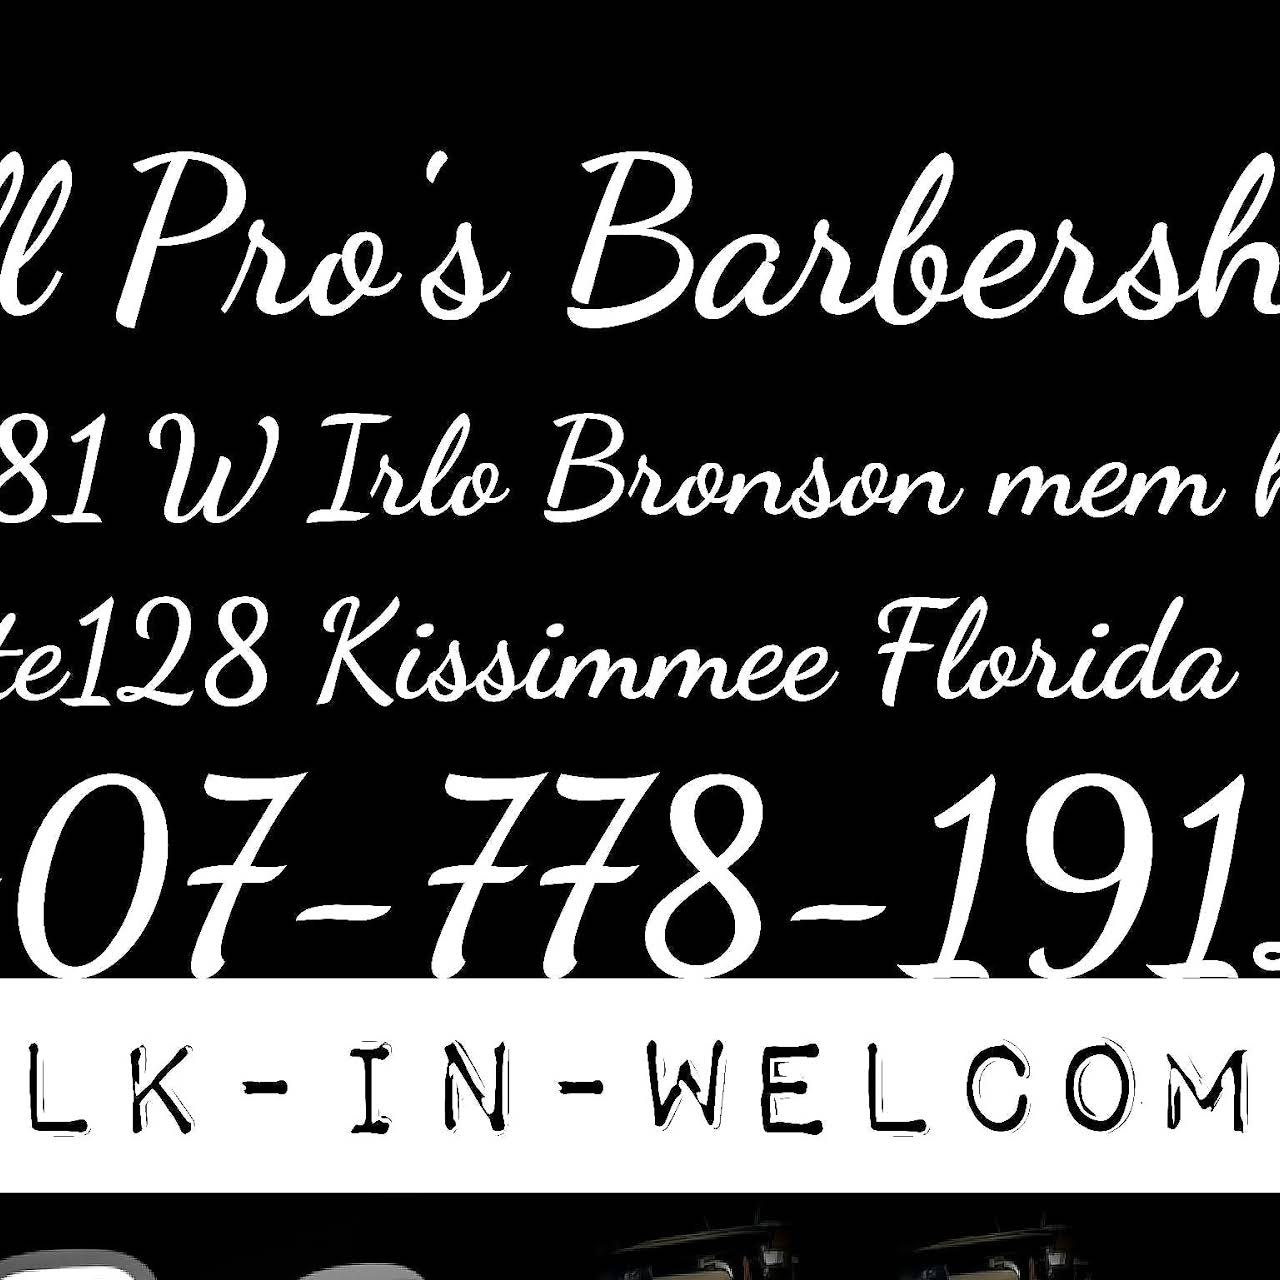 All Pros Barbershop Inc Barber Shop In Kissimmee